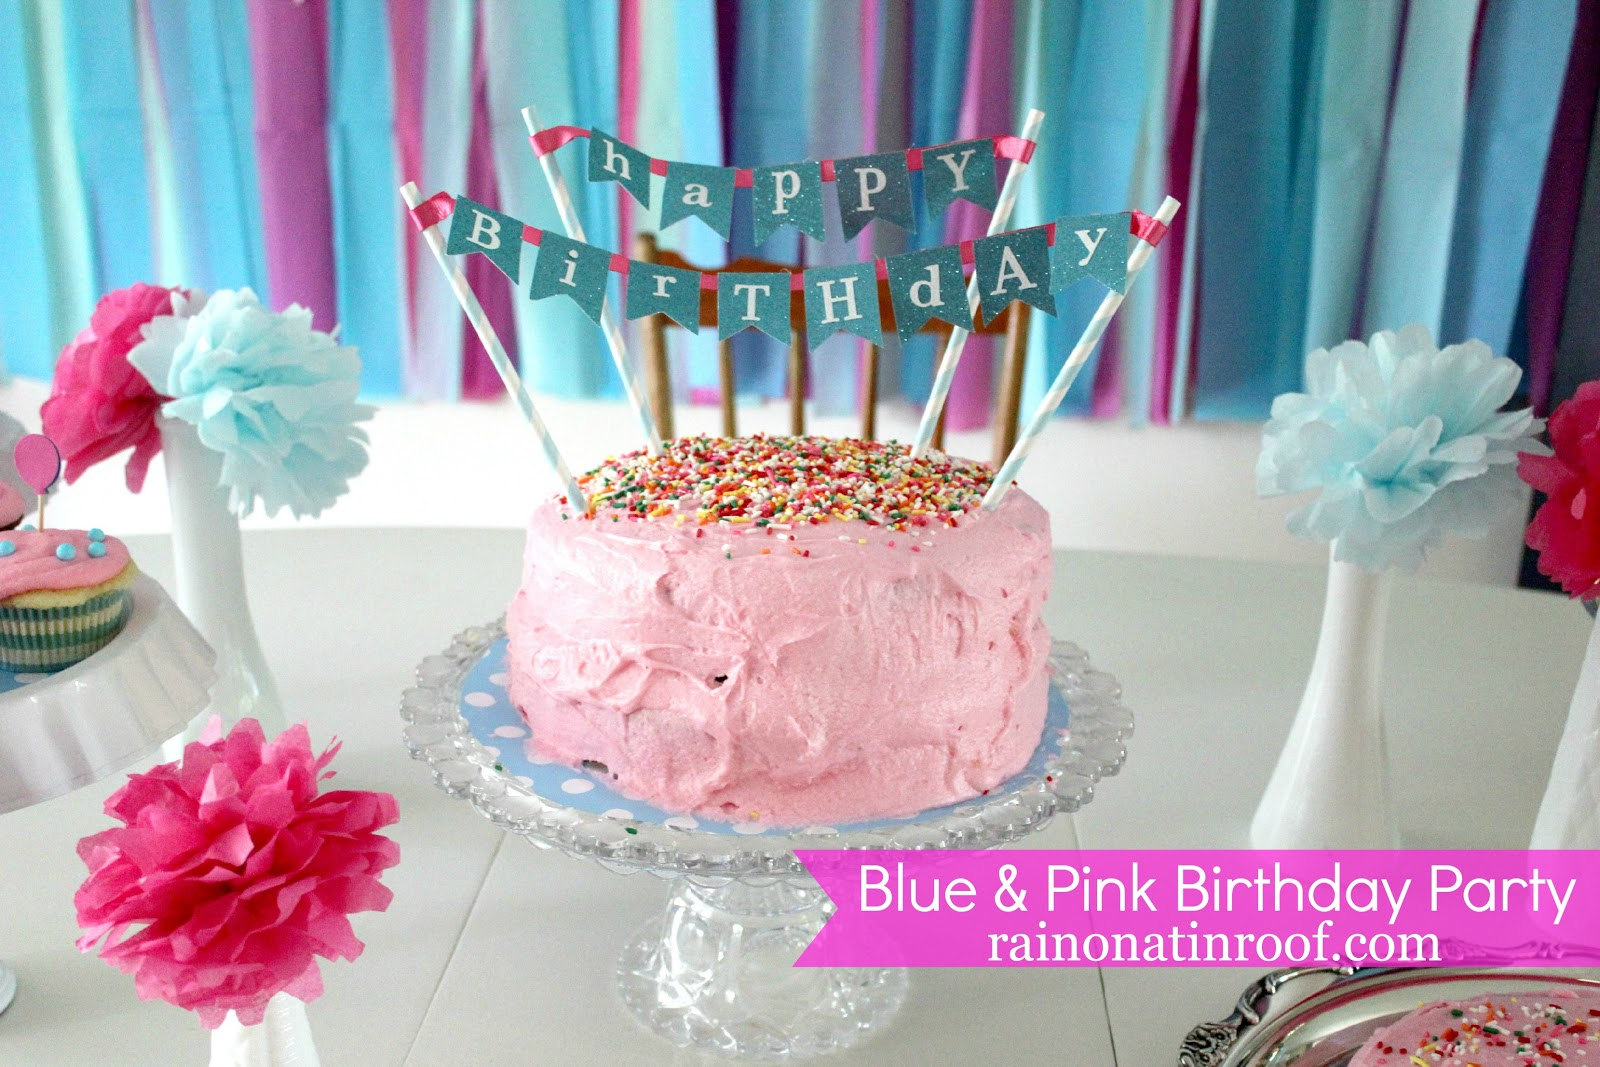 a stylish blue and pink birthday party